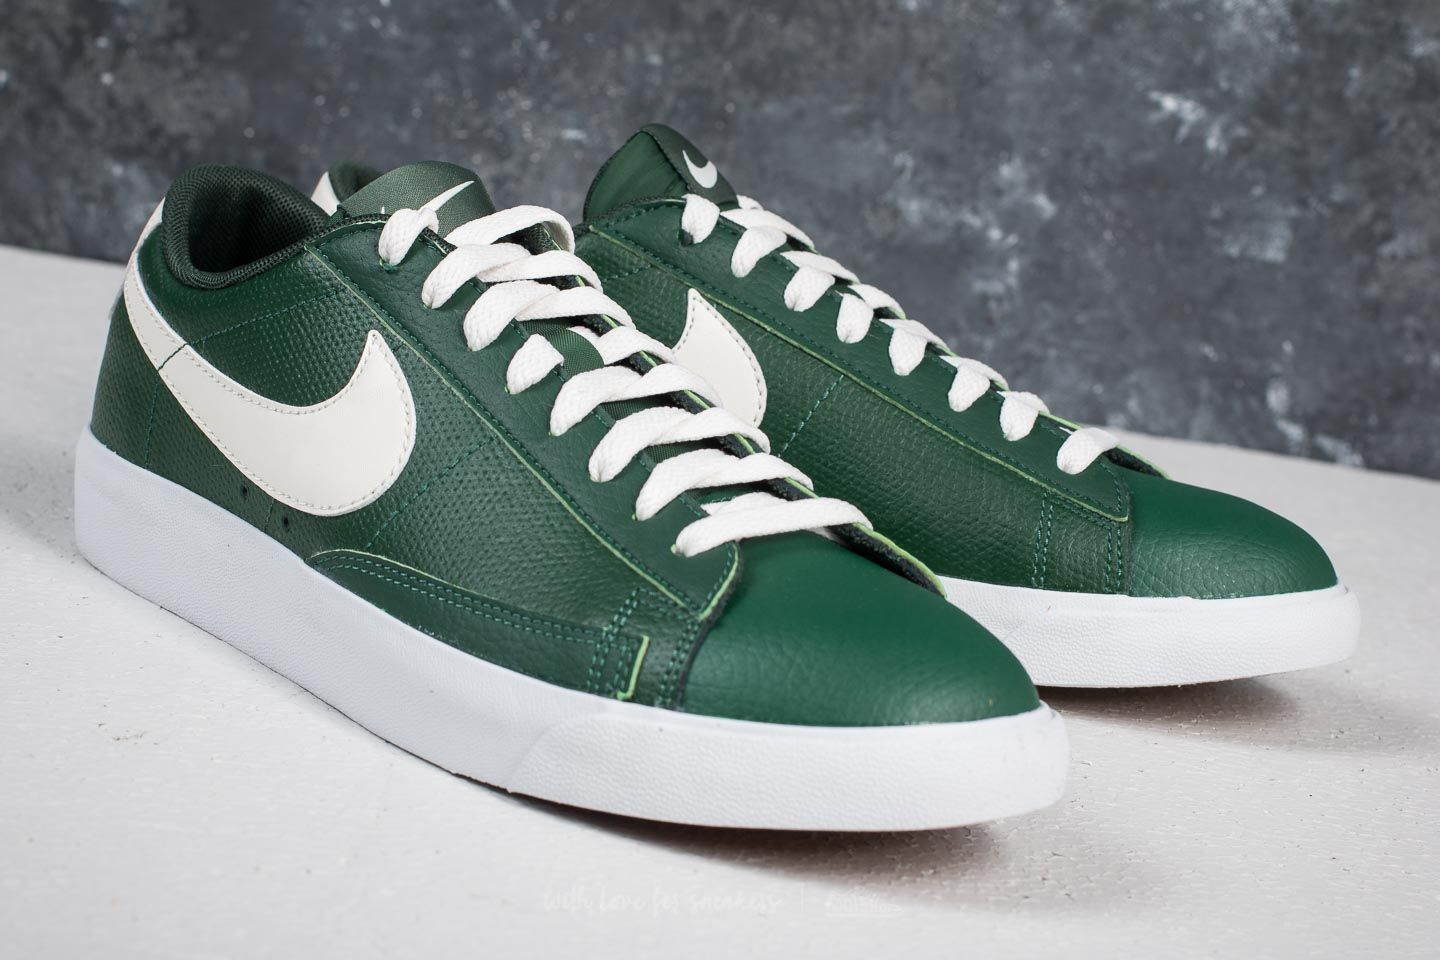 the latest 71467 2d553 Nike Blazer Low Leather Fir/ Sail-Gum Med Brown | Footshop